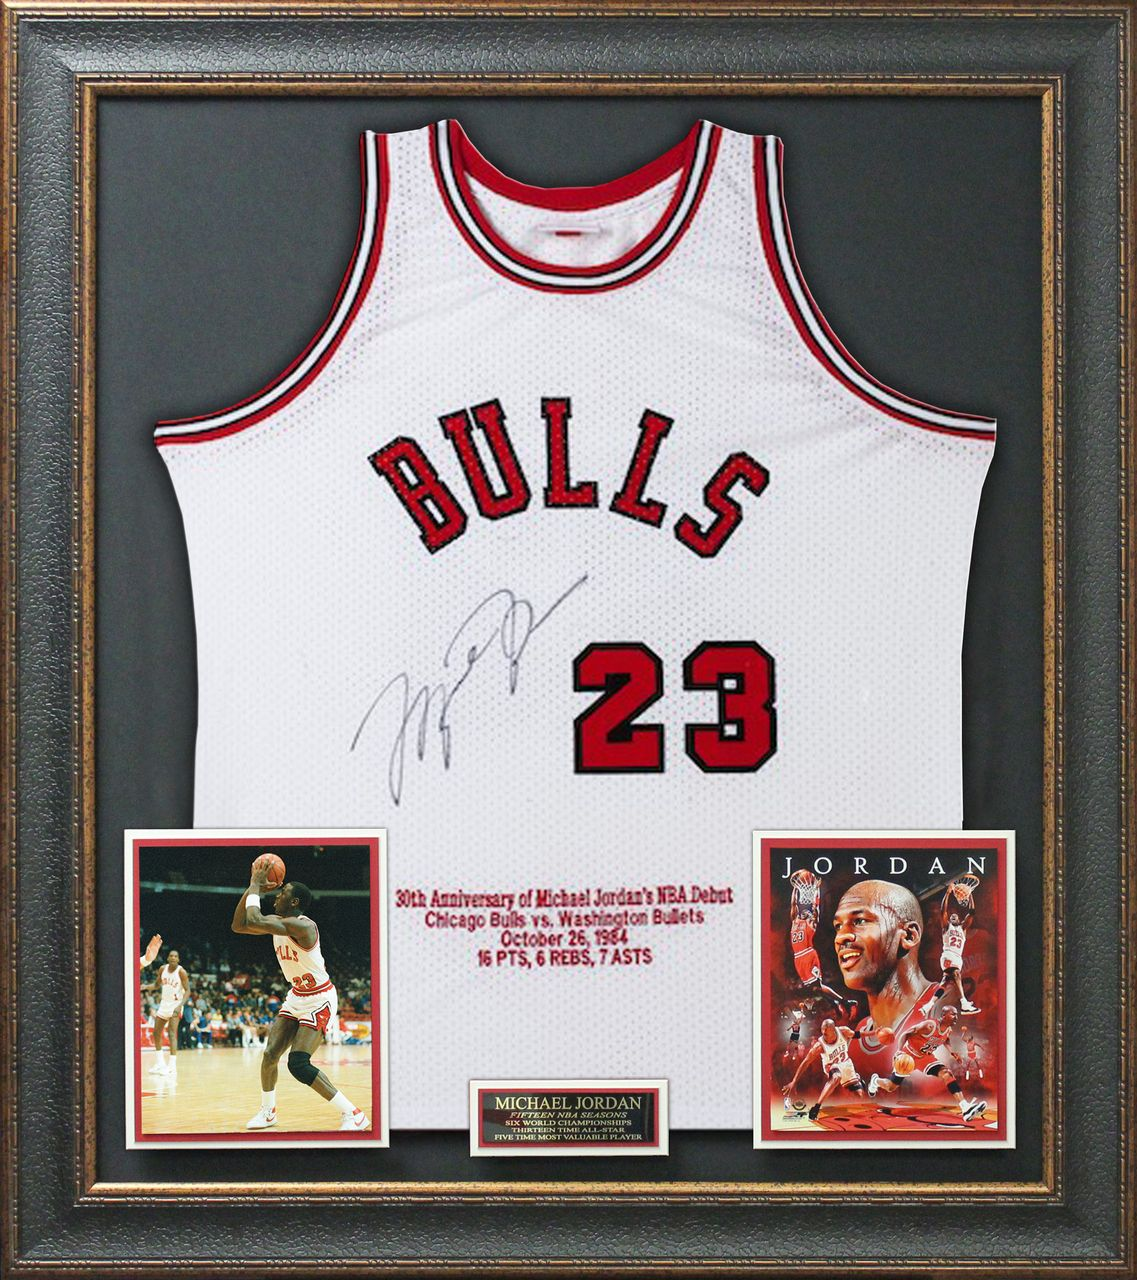 jlrlrs michael jordan jersey - Google Search This could be found at Nike